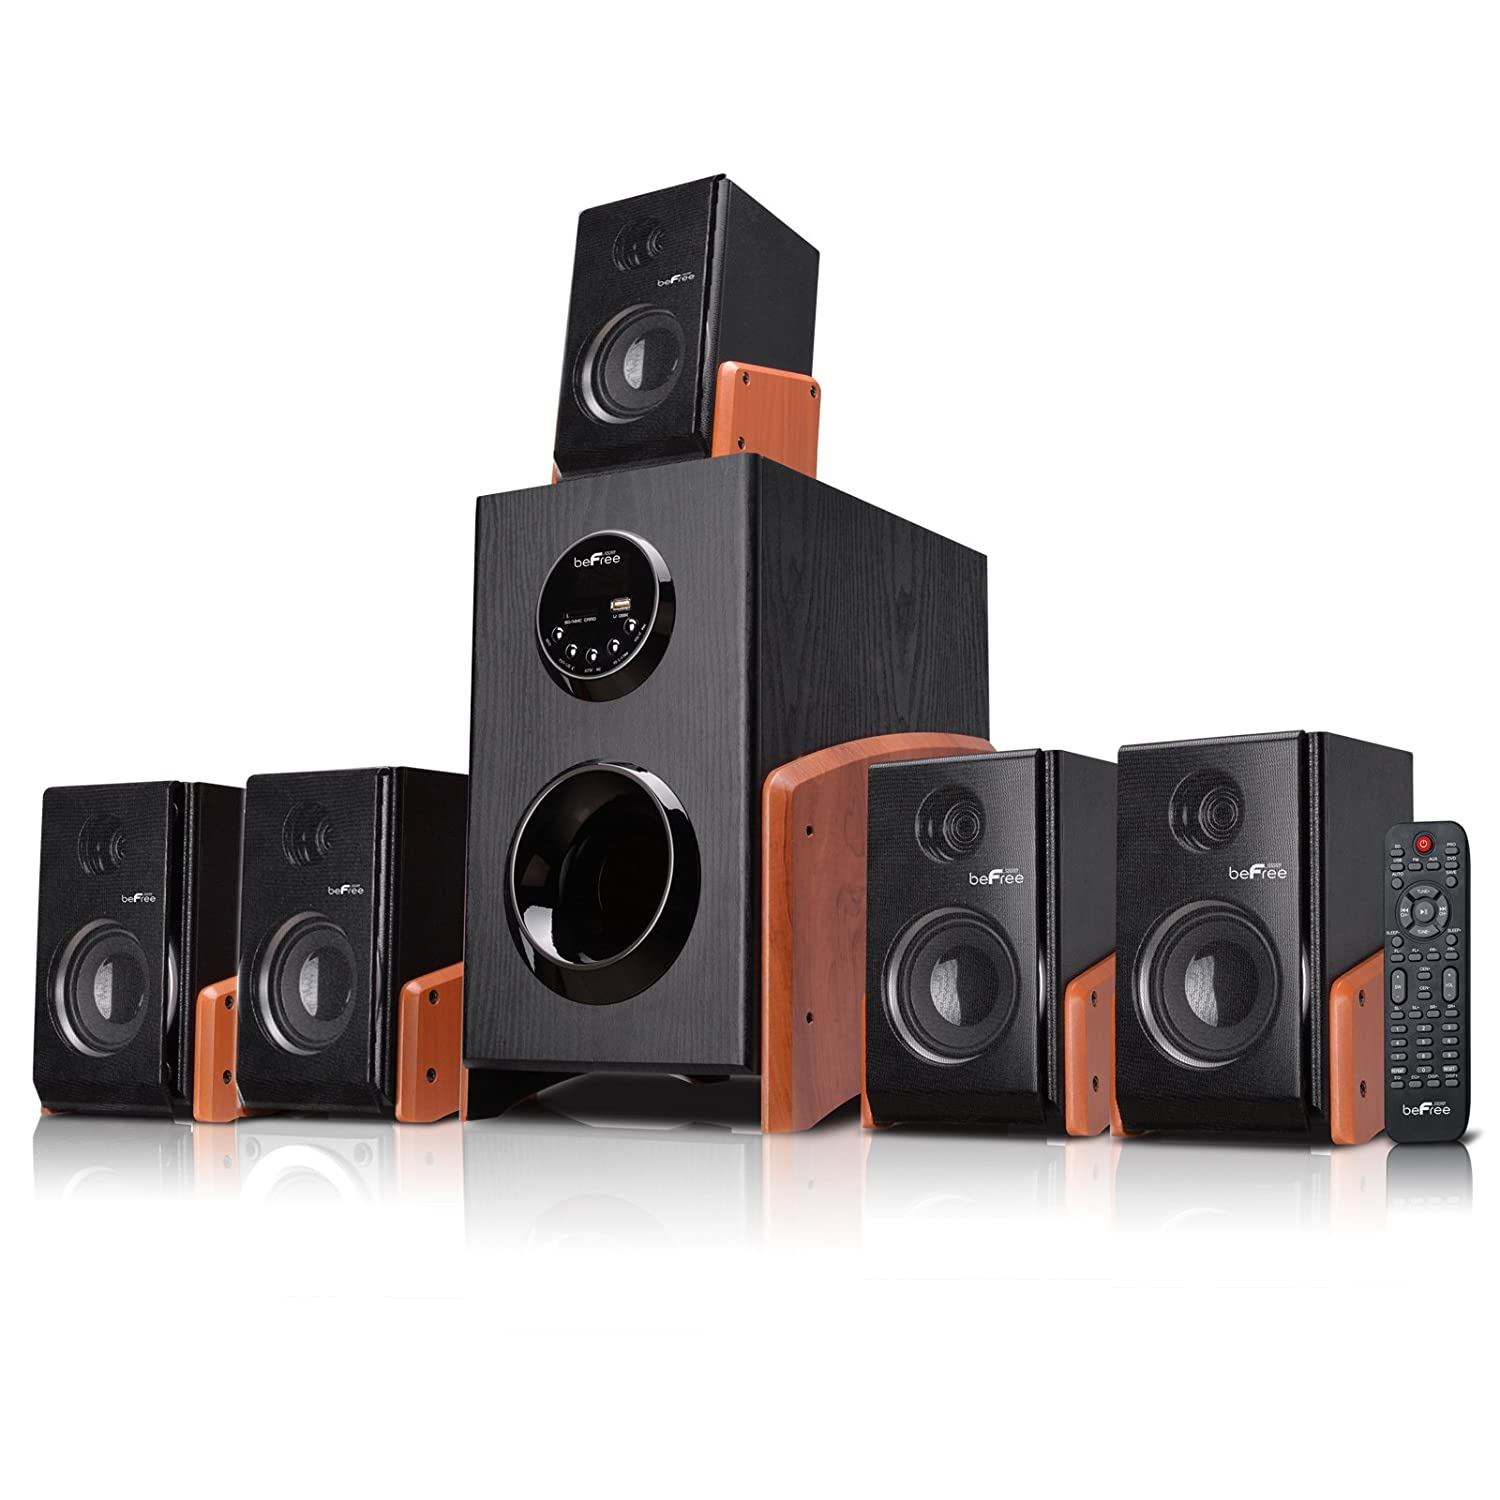 befree 5 1 channel surround sound home theater bluetooth speaker system wood new ebay. Black Bedroom Furniture Sets. Home Design Ideas